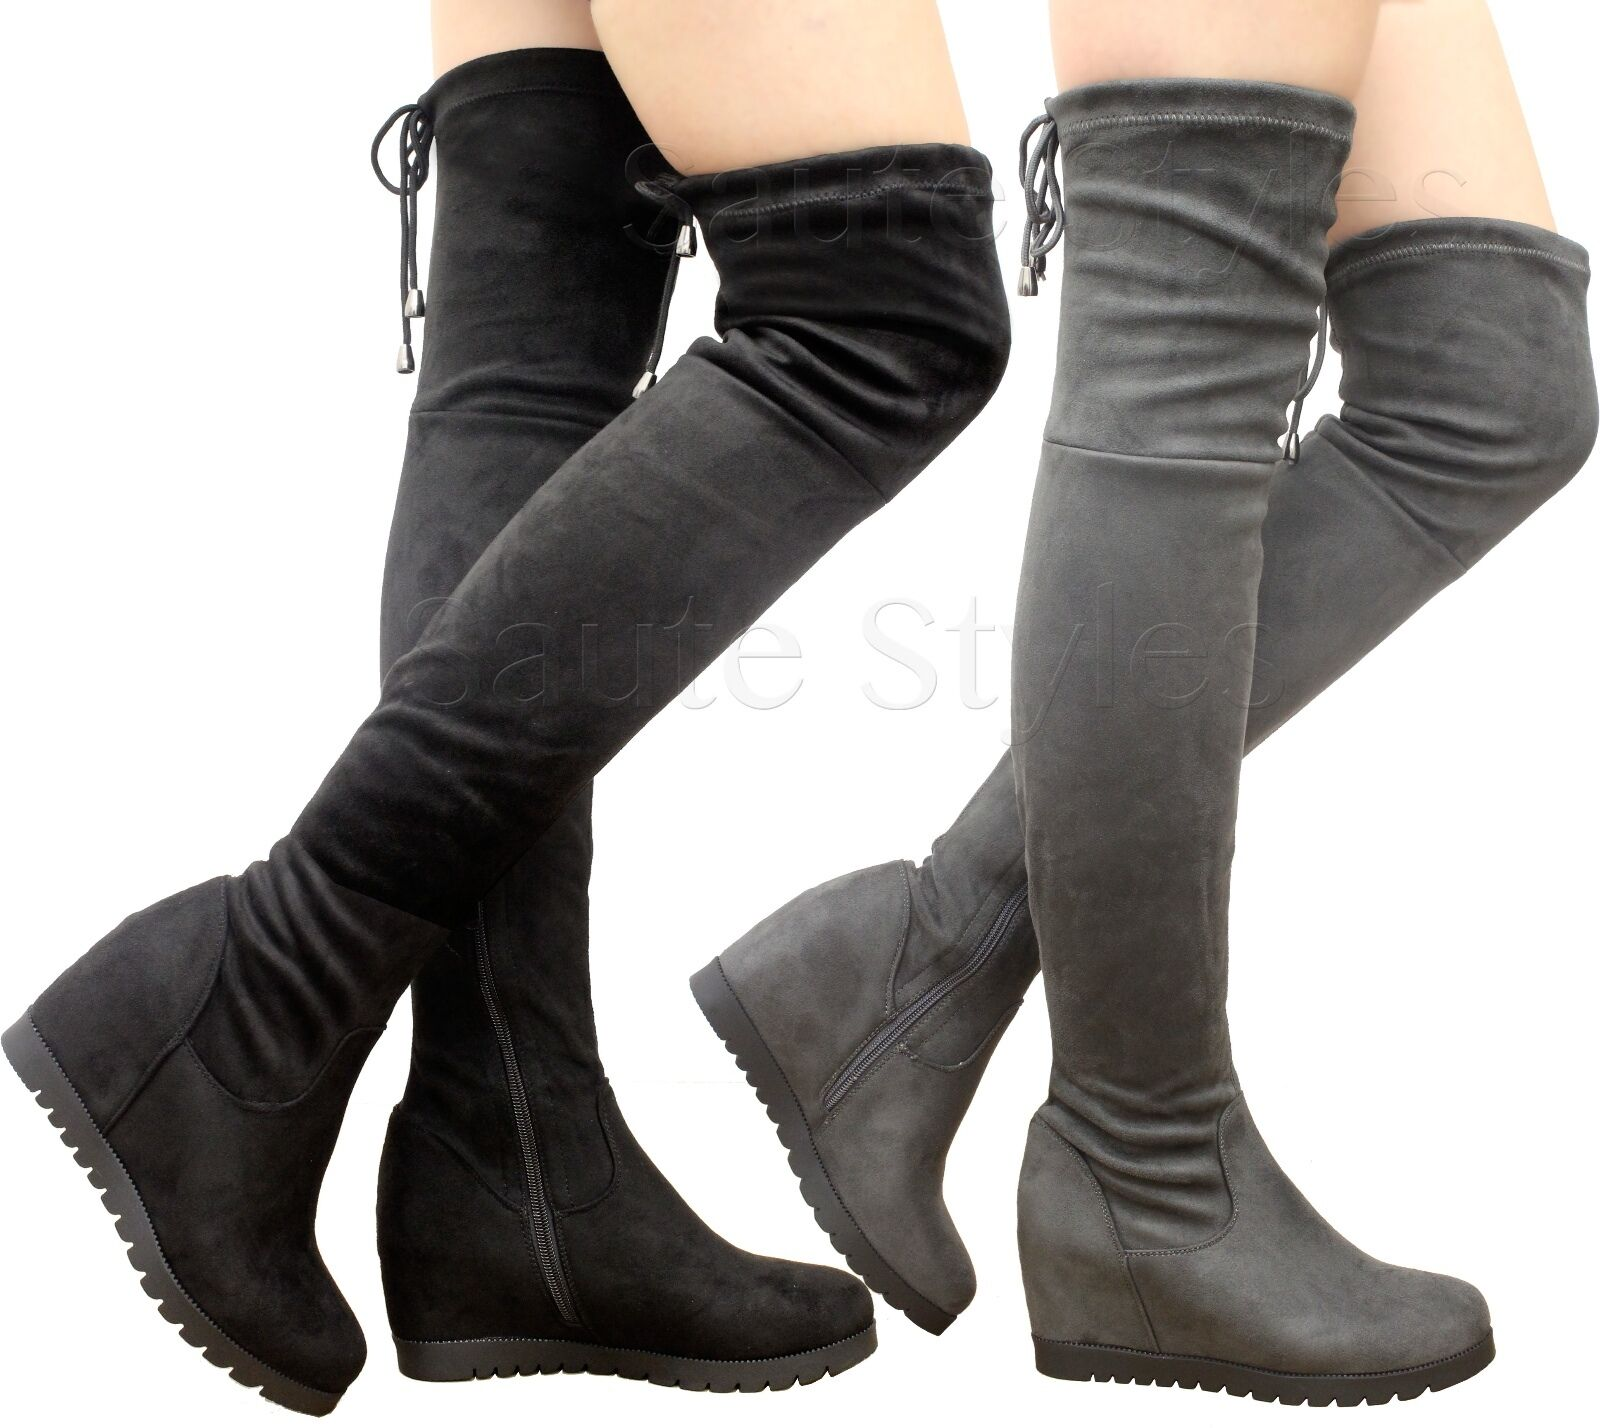 Ladies Womens Over The Knee Boots Thigh High Tie Back High Wedge Heel Shoes Size